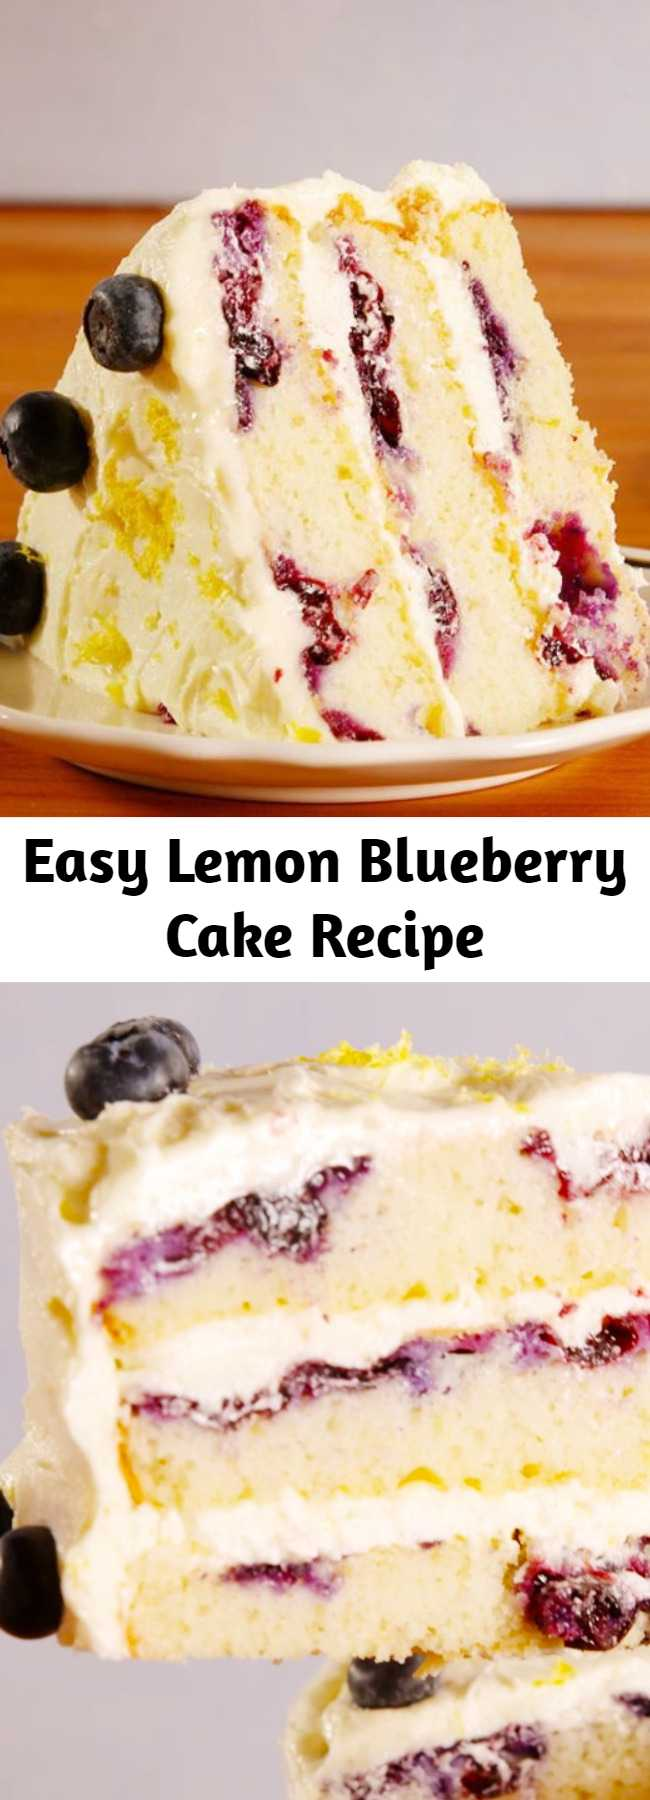 Easy Lemon Blueberry Cake Recipe - This lemon blueberry cake is the only thing you need to bake this spring. #easy #recipe #dessert #dessertrecipes #cakerecipes #cake #lemon #blueberry #homemade #baking